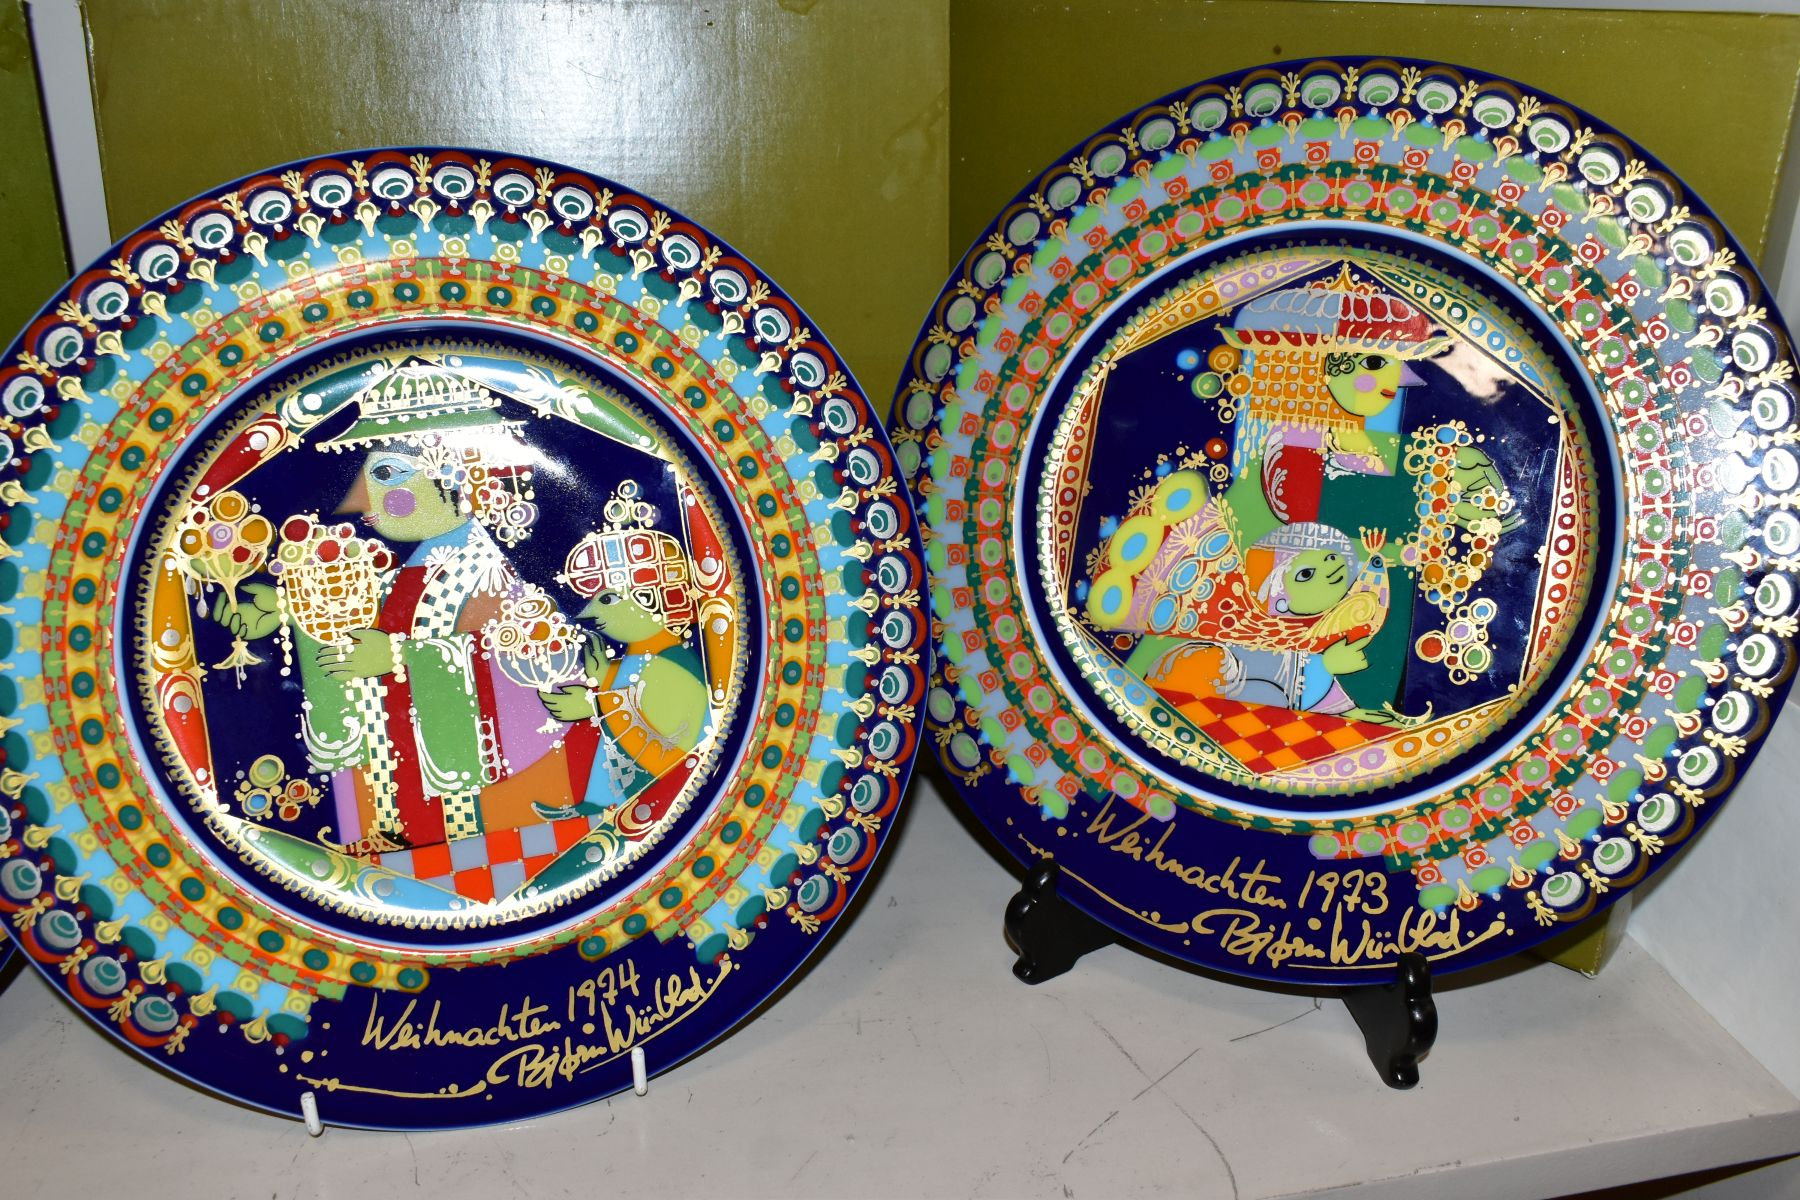 THREE BOXED ROSENTHAL CHRISTMAS PLATES, 1973, 1974 and 1975 all signed by Bijorn Wiinbald - Image 3 of 12